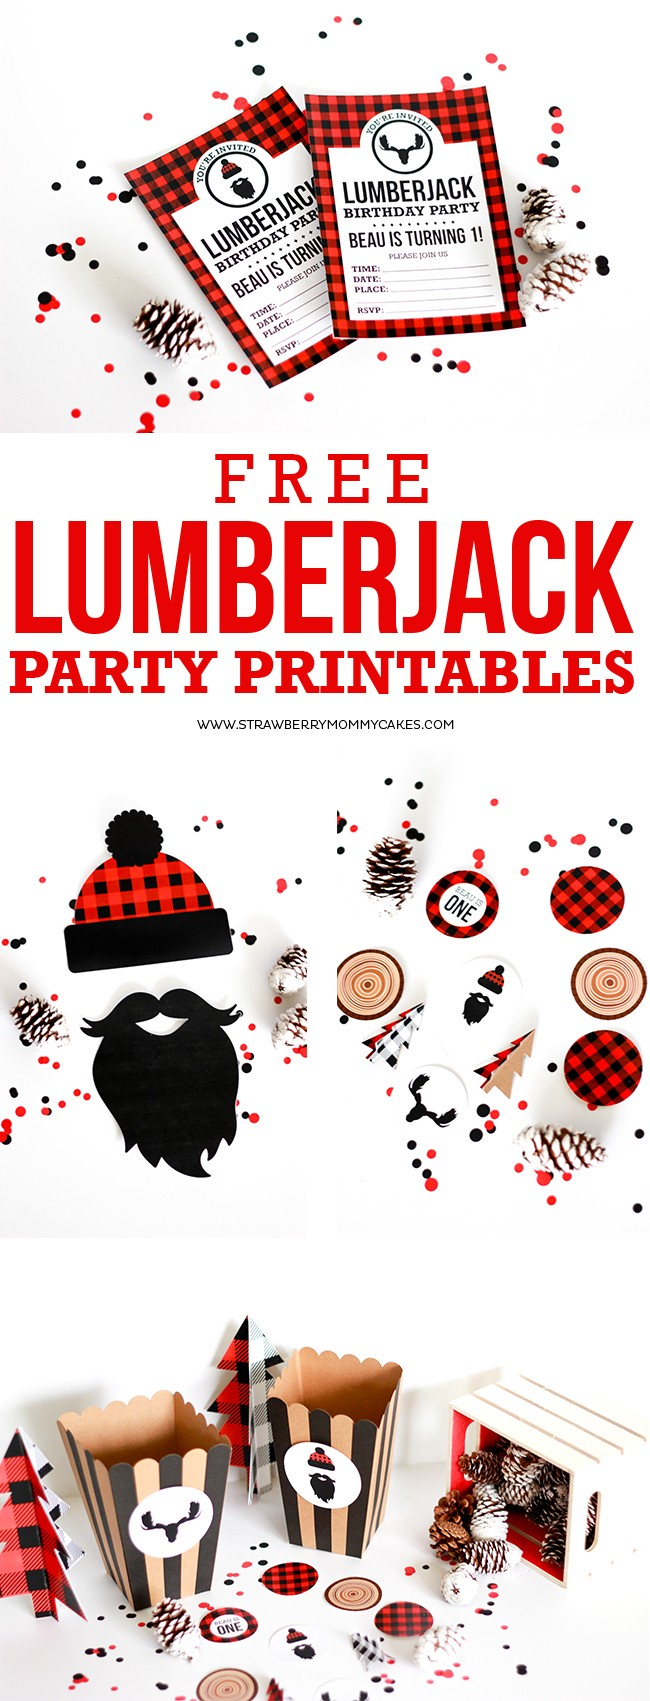 Long collage of free printable birthday invitations and other lumberjack party printables